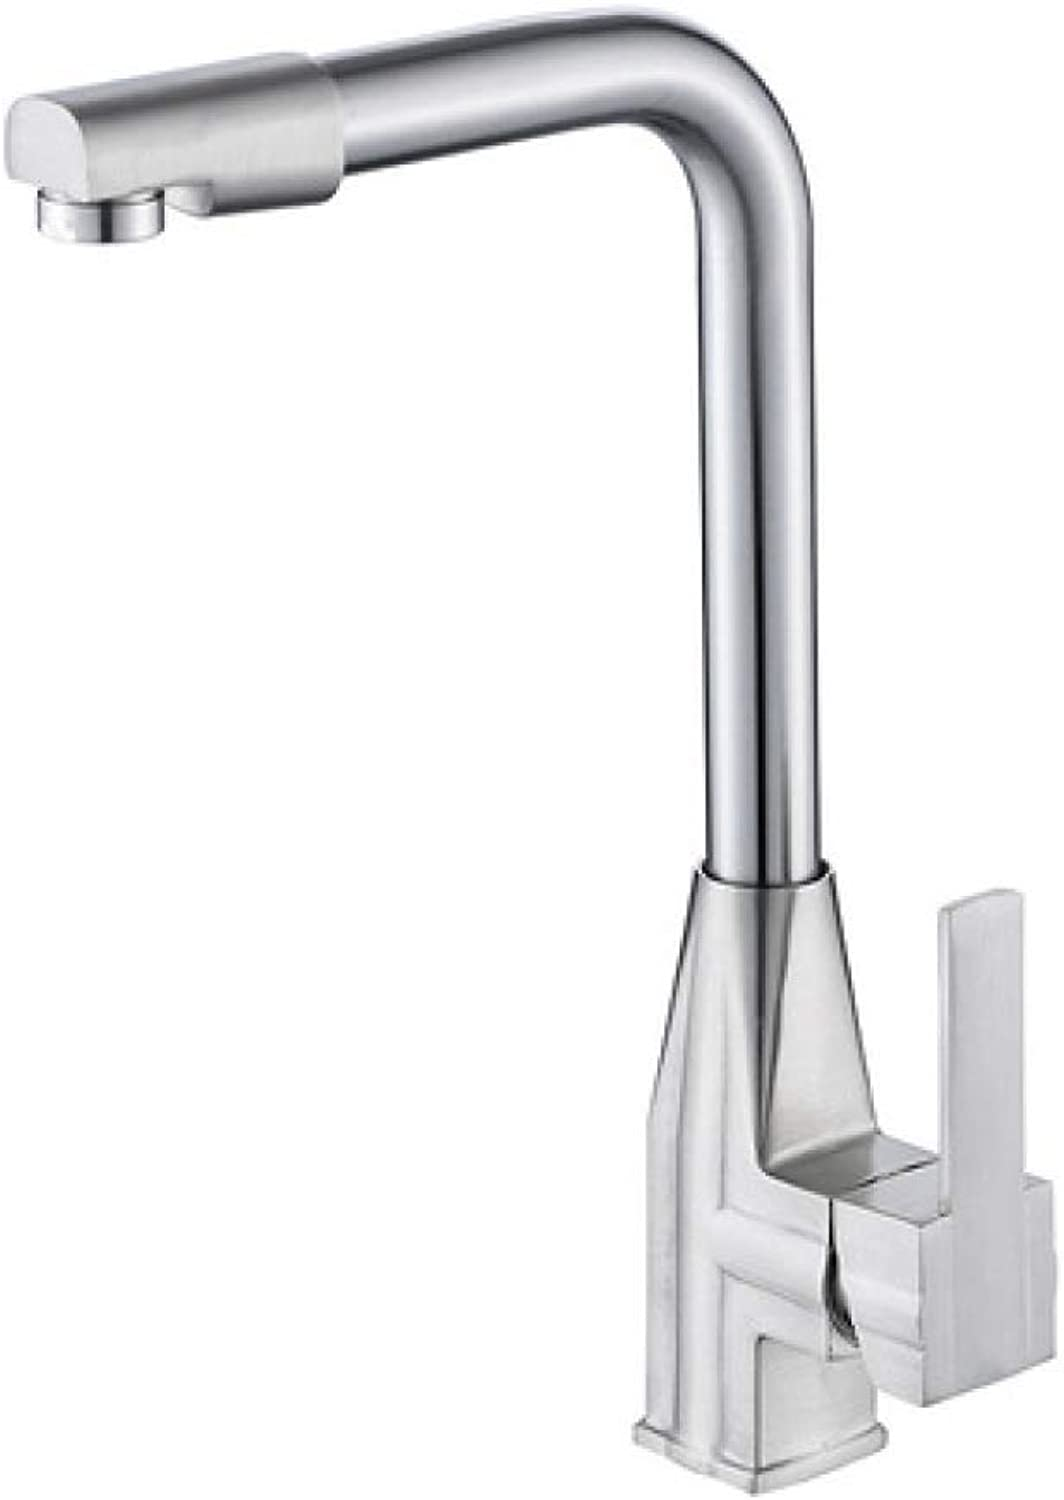 PYIP Water Filter Taps Mixing Valve Balcony Faucet Hot And Cold Sink Faucet Hot And Cold Kitchen Faucet Diameter  31Mm